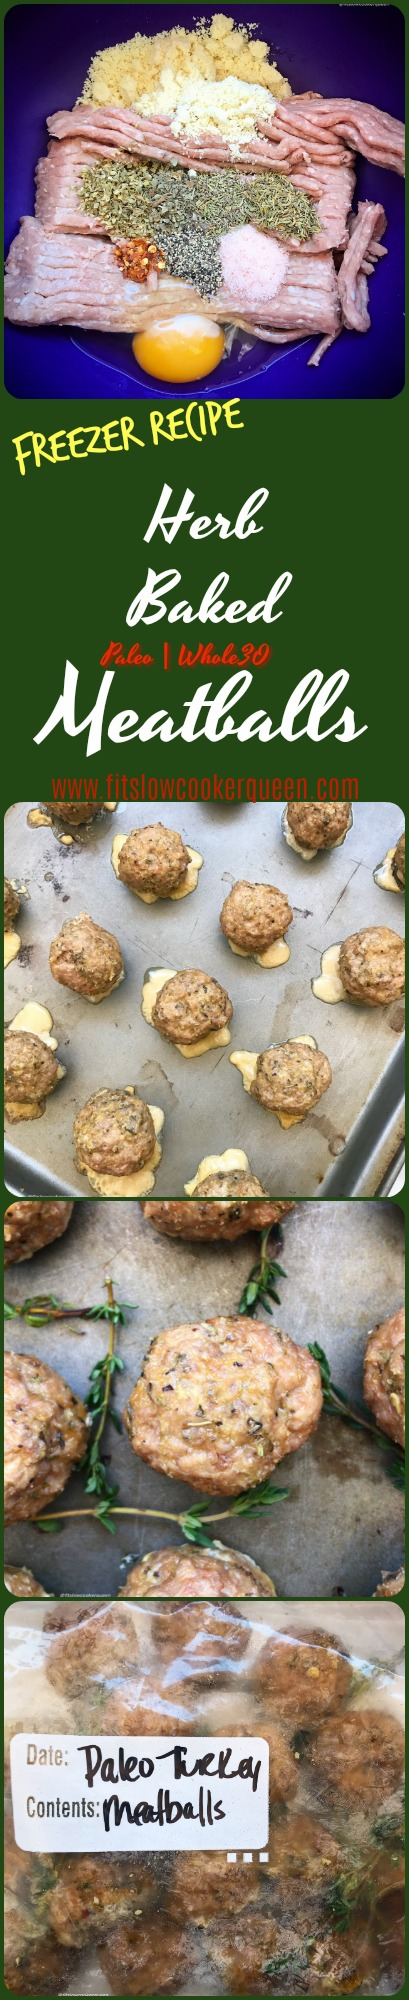 Done in less than 30 minutes, these herbed meatballs and both paleo and whole30. Use your preferred ground meat with these meatballs that can also be frozen for later use!